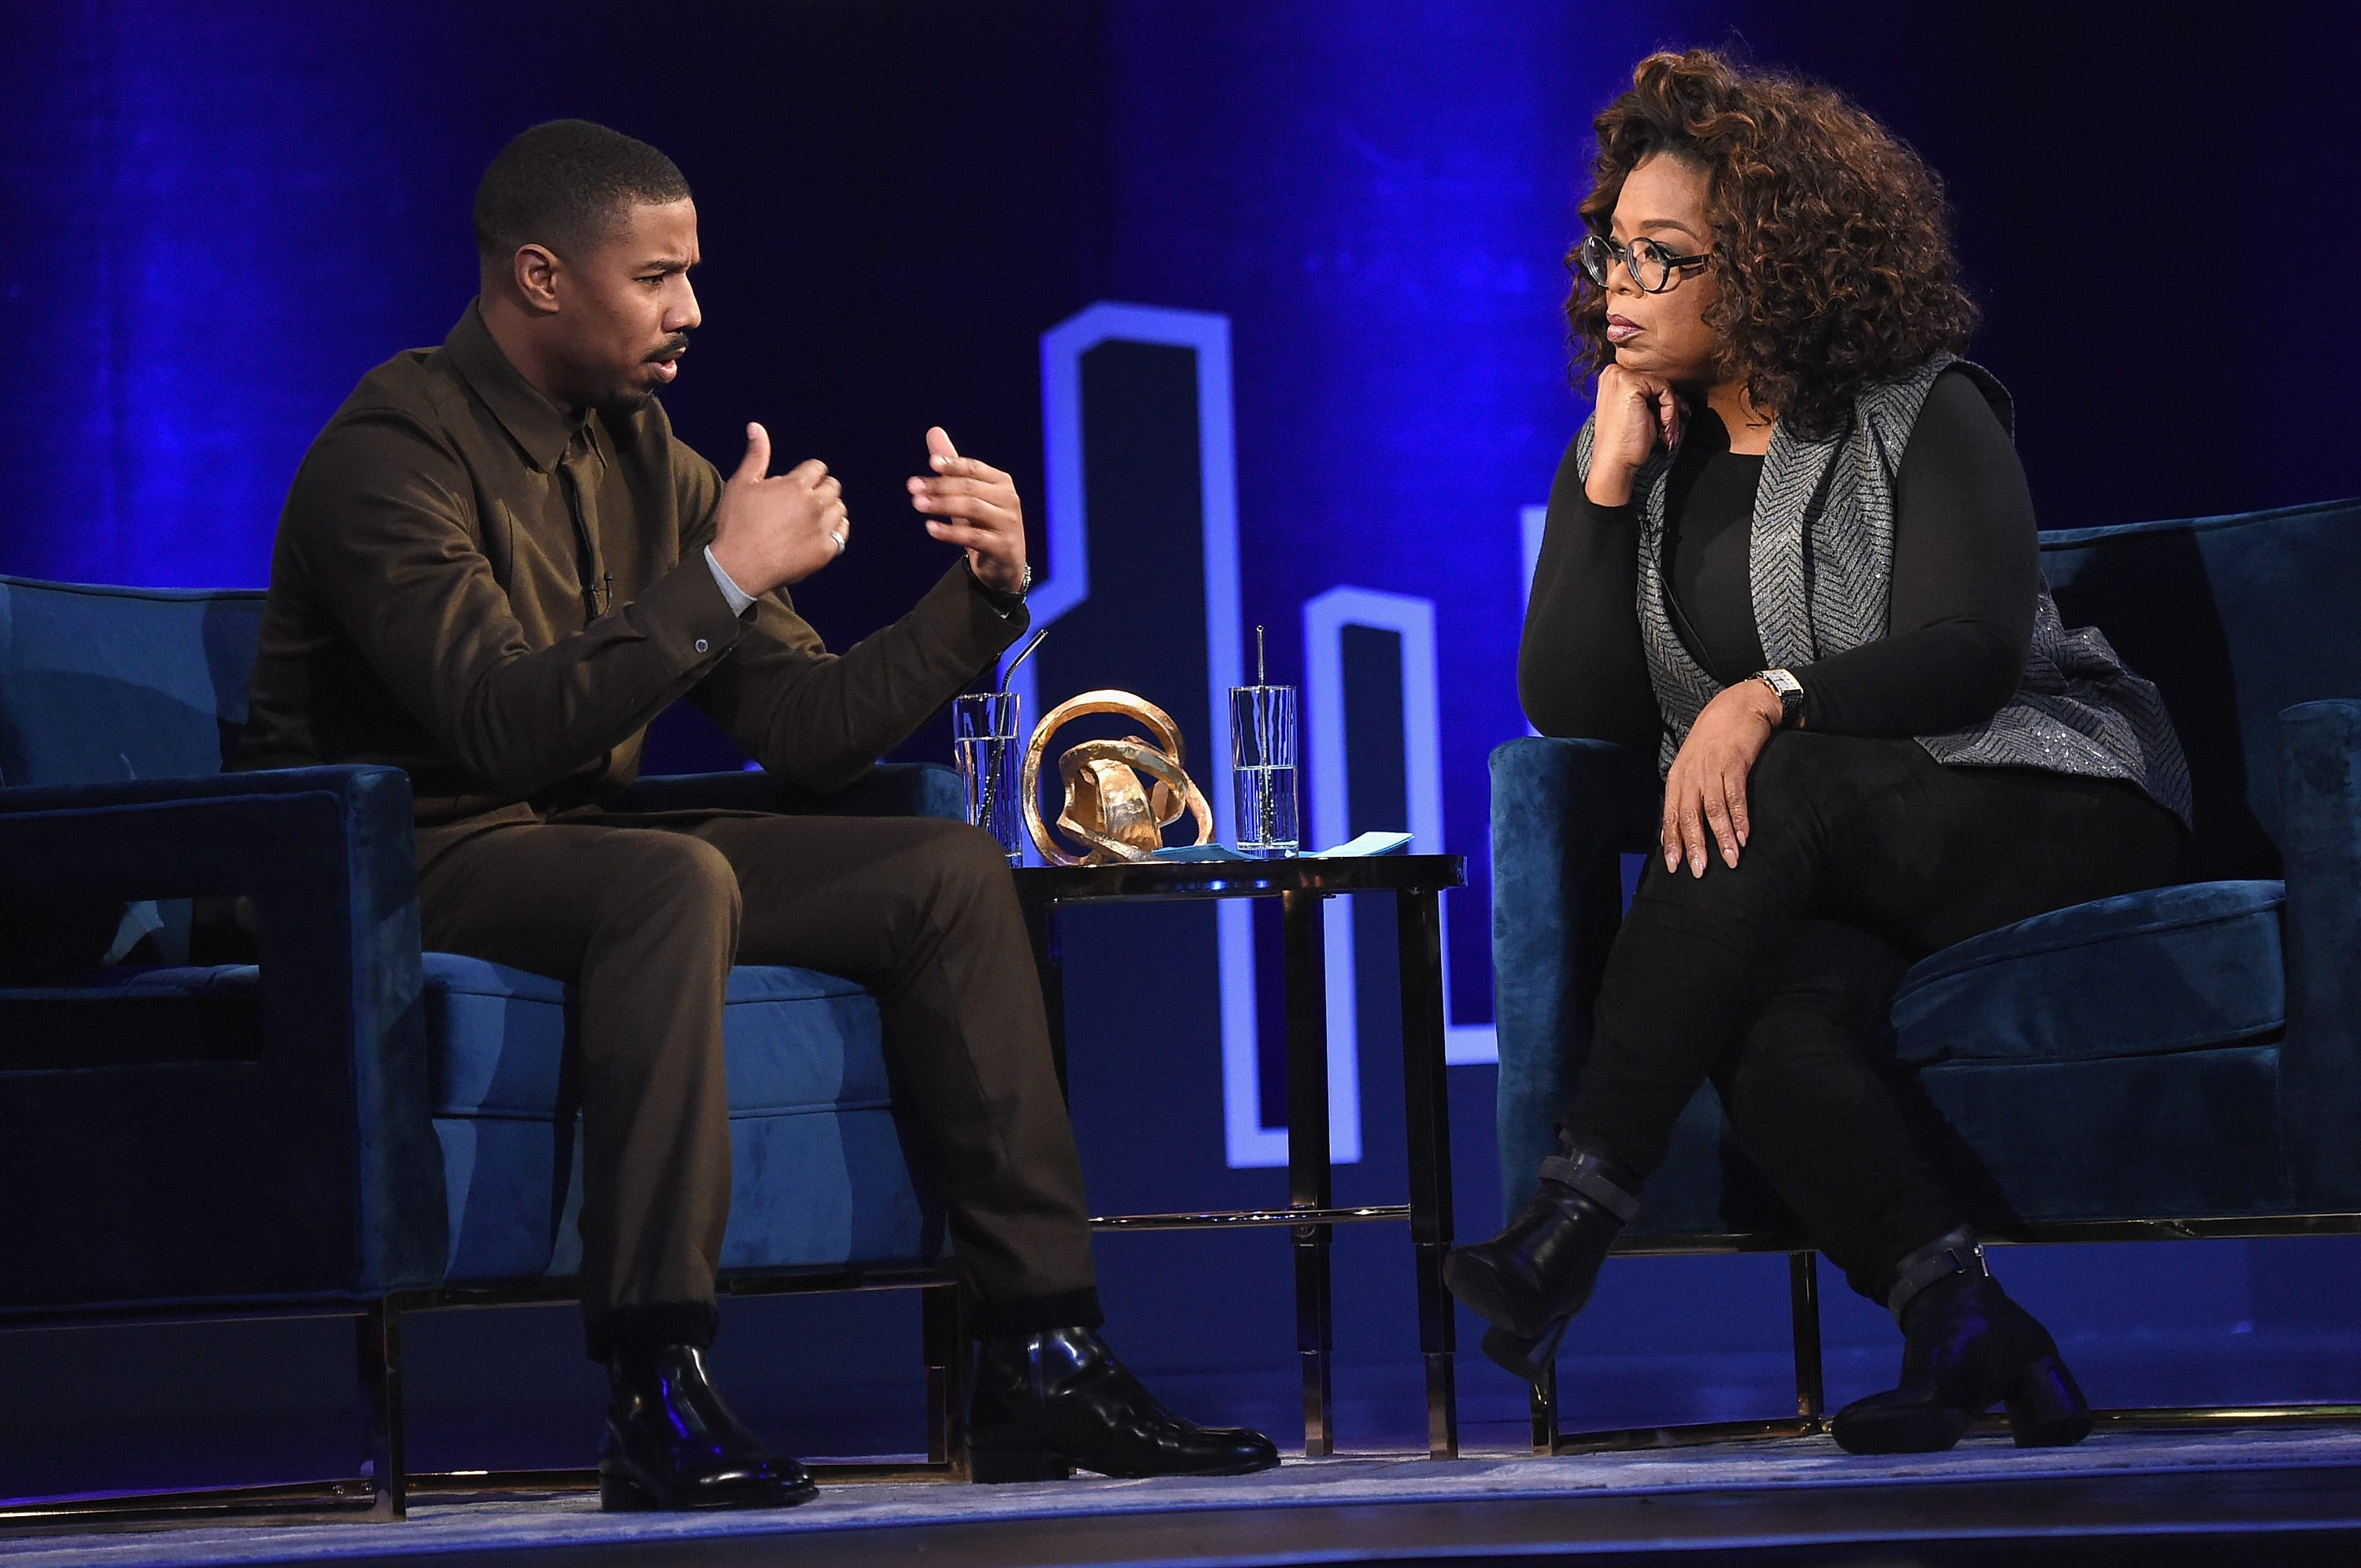 f4fec759f31f8f ... B. Jordan says he went to therapy after playing Killmonger in  Black  Panther  USA TODAY - 21 14 PM ET February 05